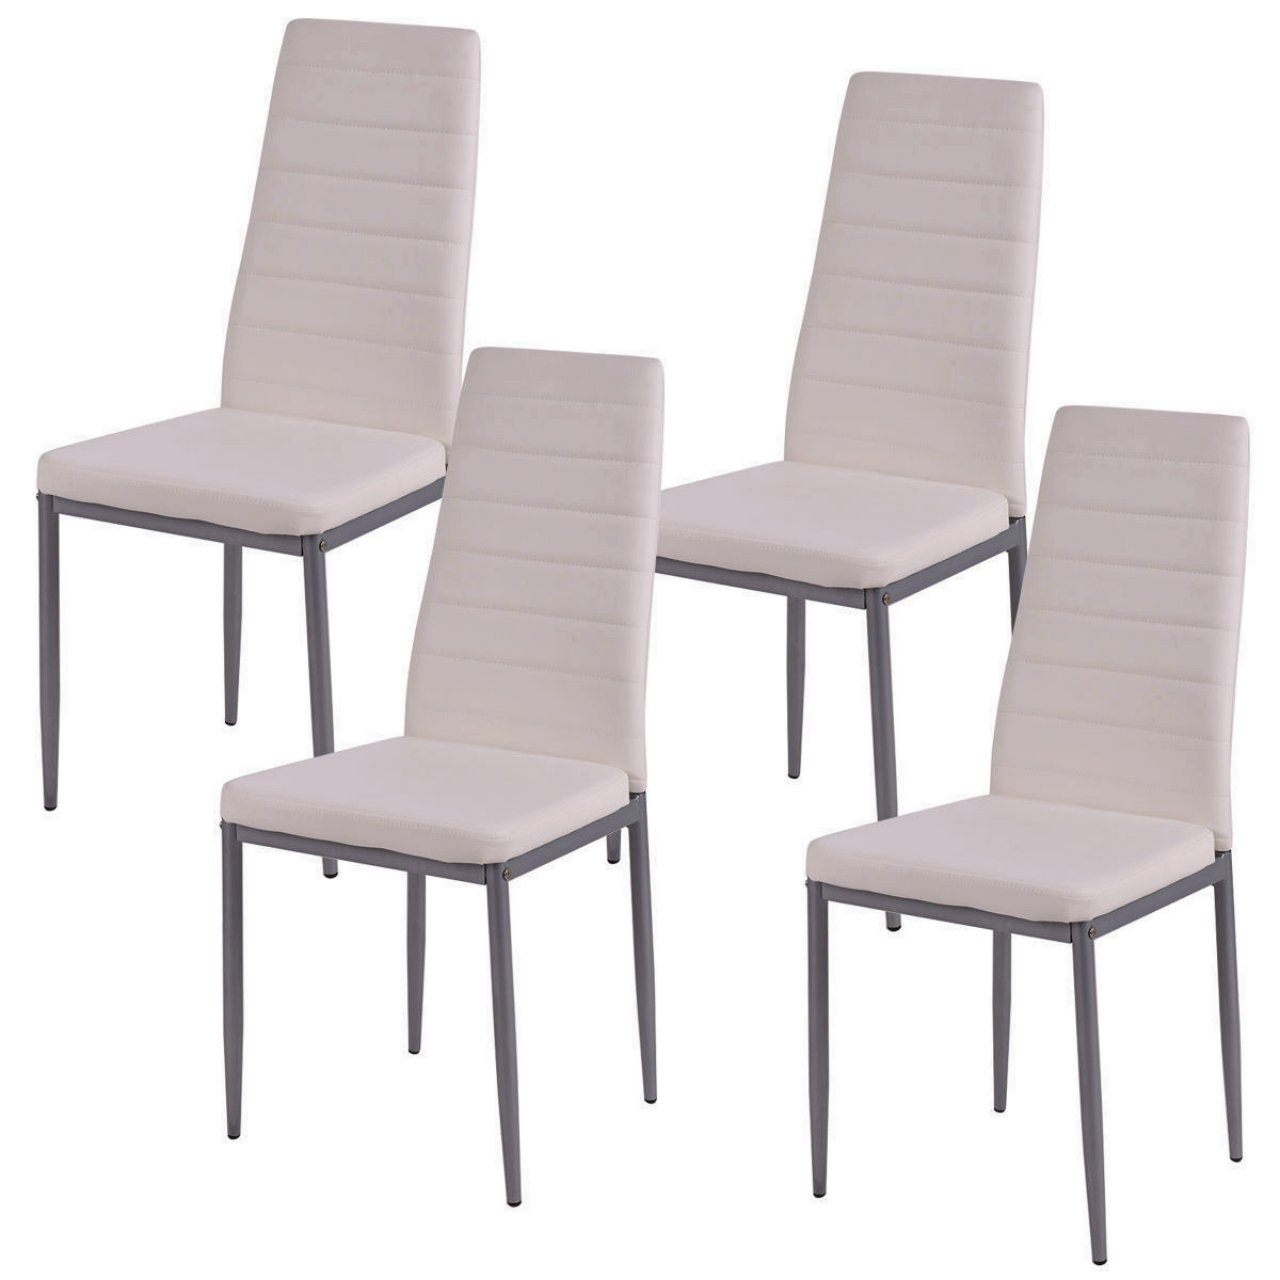 Set of 4 Elegant Dining Chairs Modern Design Comfortable Home Office Furniture/ White #1007